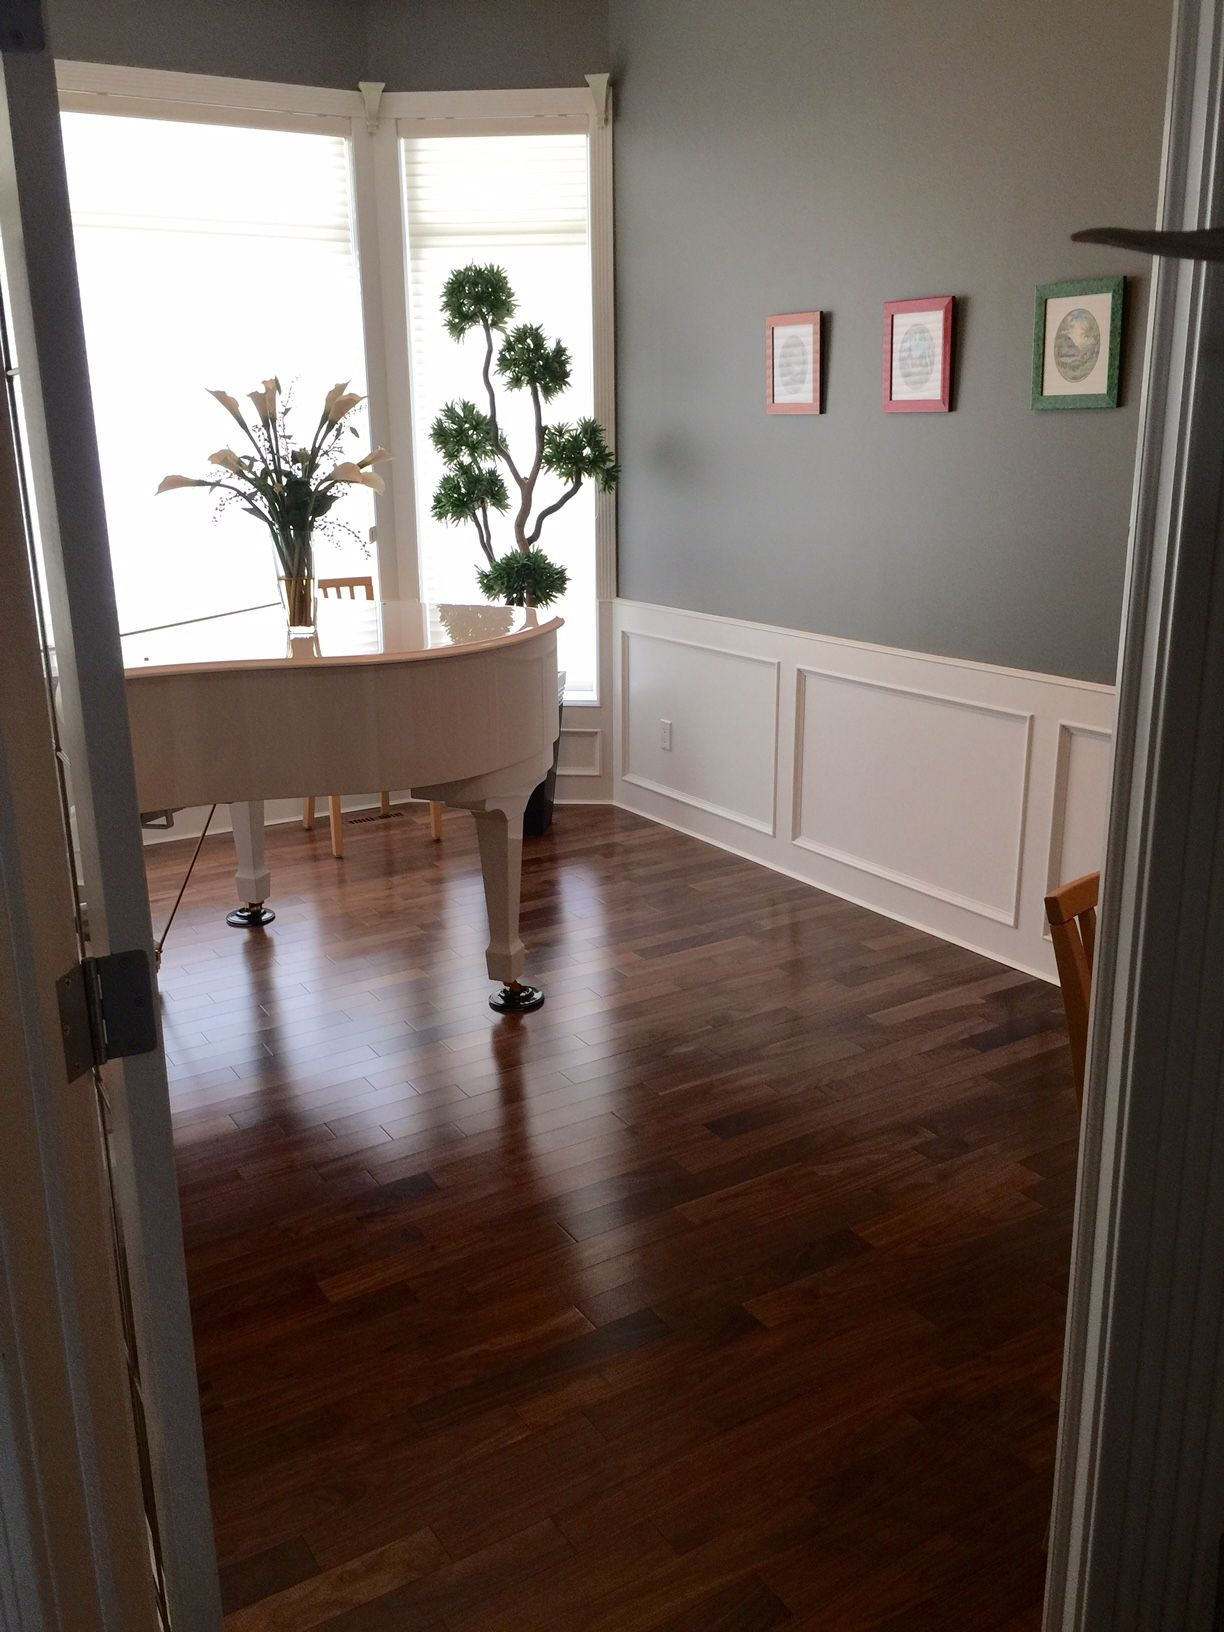 hardwood flooring calgary cost of natural ambiance black walnut exclusive lauzon hardwood in take a look at our beautiful engineered 3 1 4 exclusive black walnut hardwood flooring in this music room a beautiful dark brown hardwood flooring